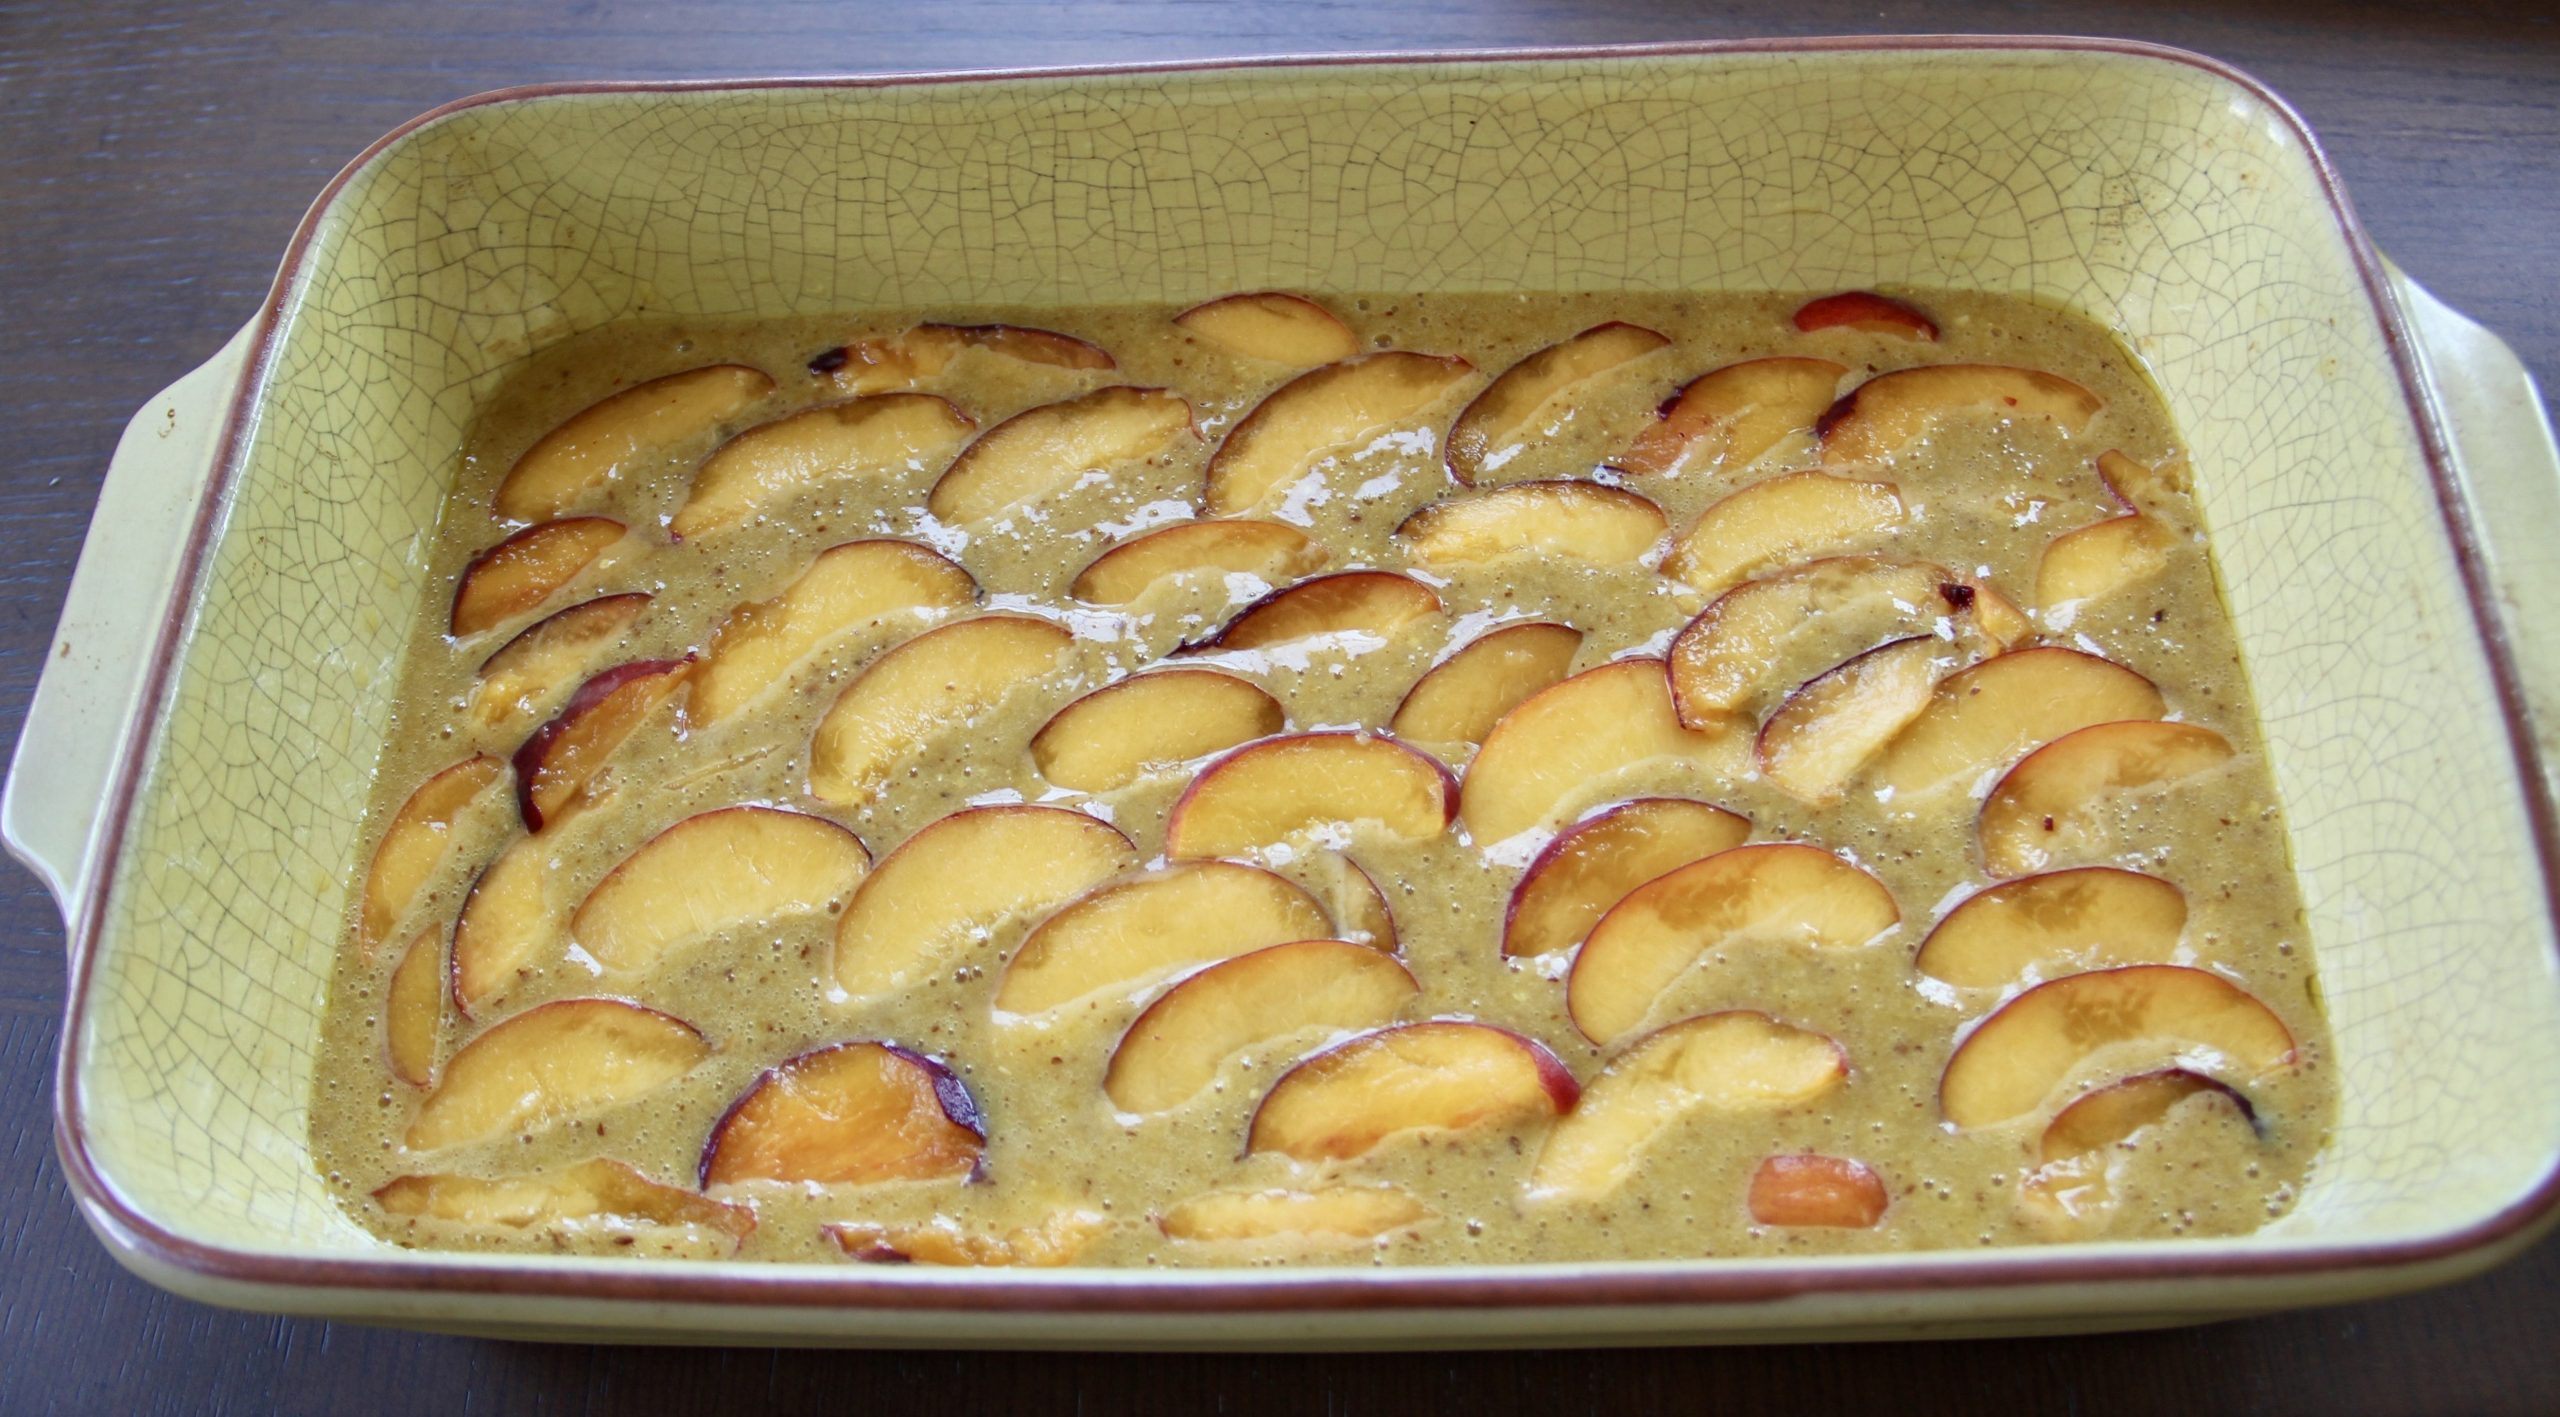 Sliced peaches on top of raw batter before it goes into the oven